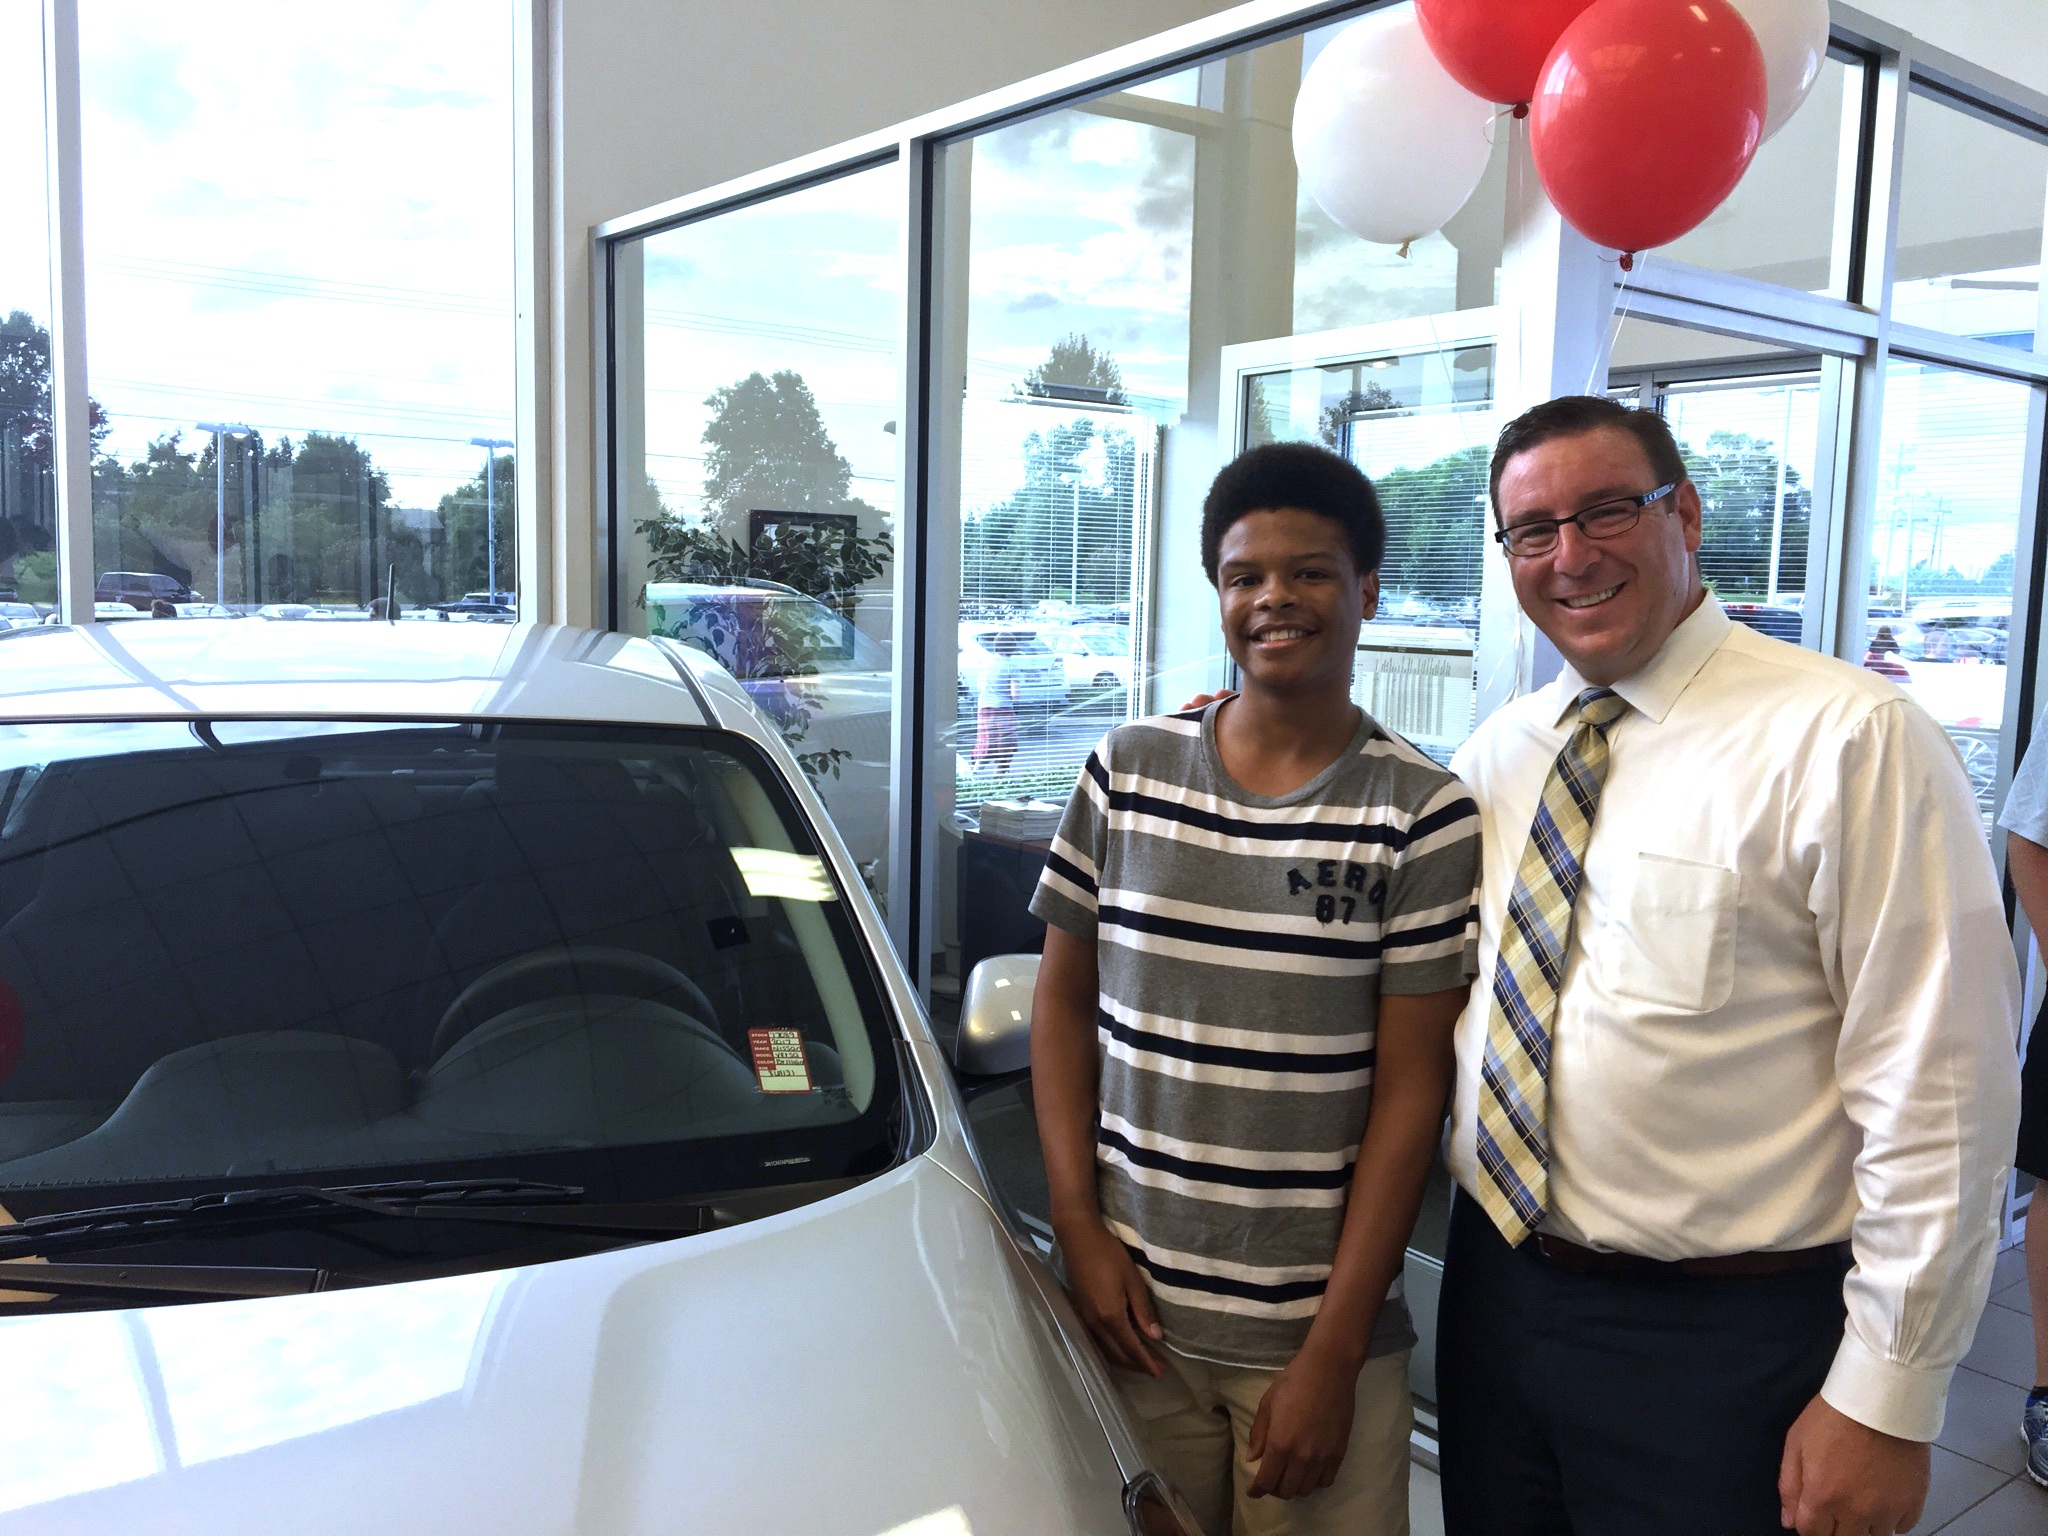 gallatin student wins free car for good grades newton nissan. Black Bedroom Furniture Sets. Home Design Ideas